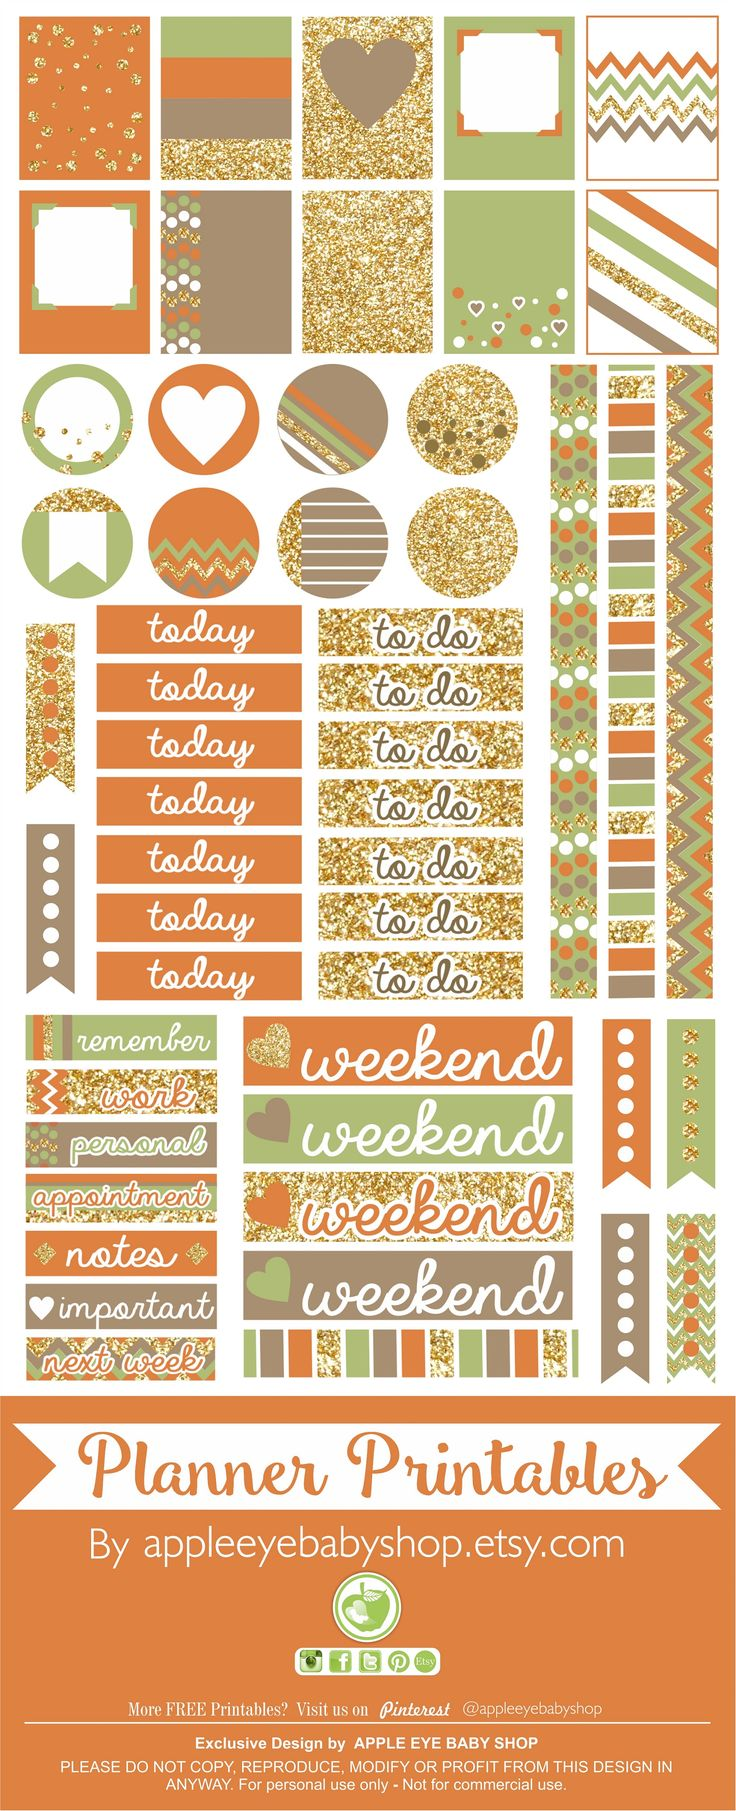 Free Diy Projects 355 Best Planner Images On Pinterest Planner Ideas Happy